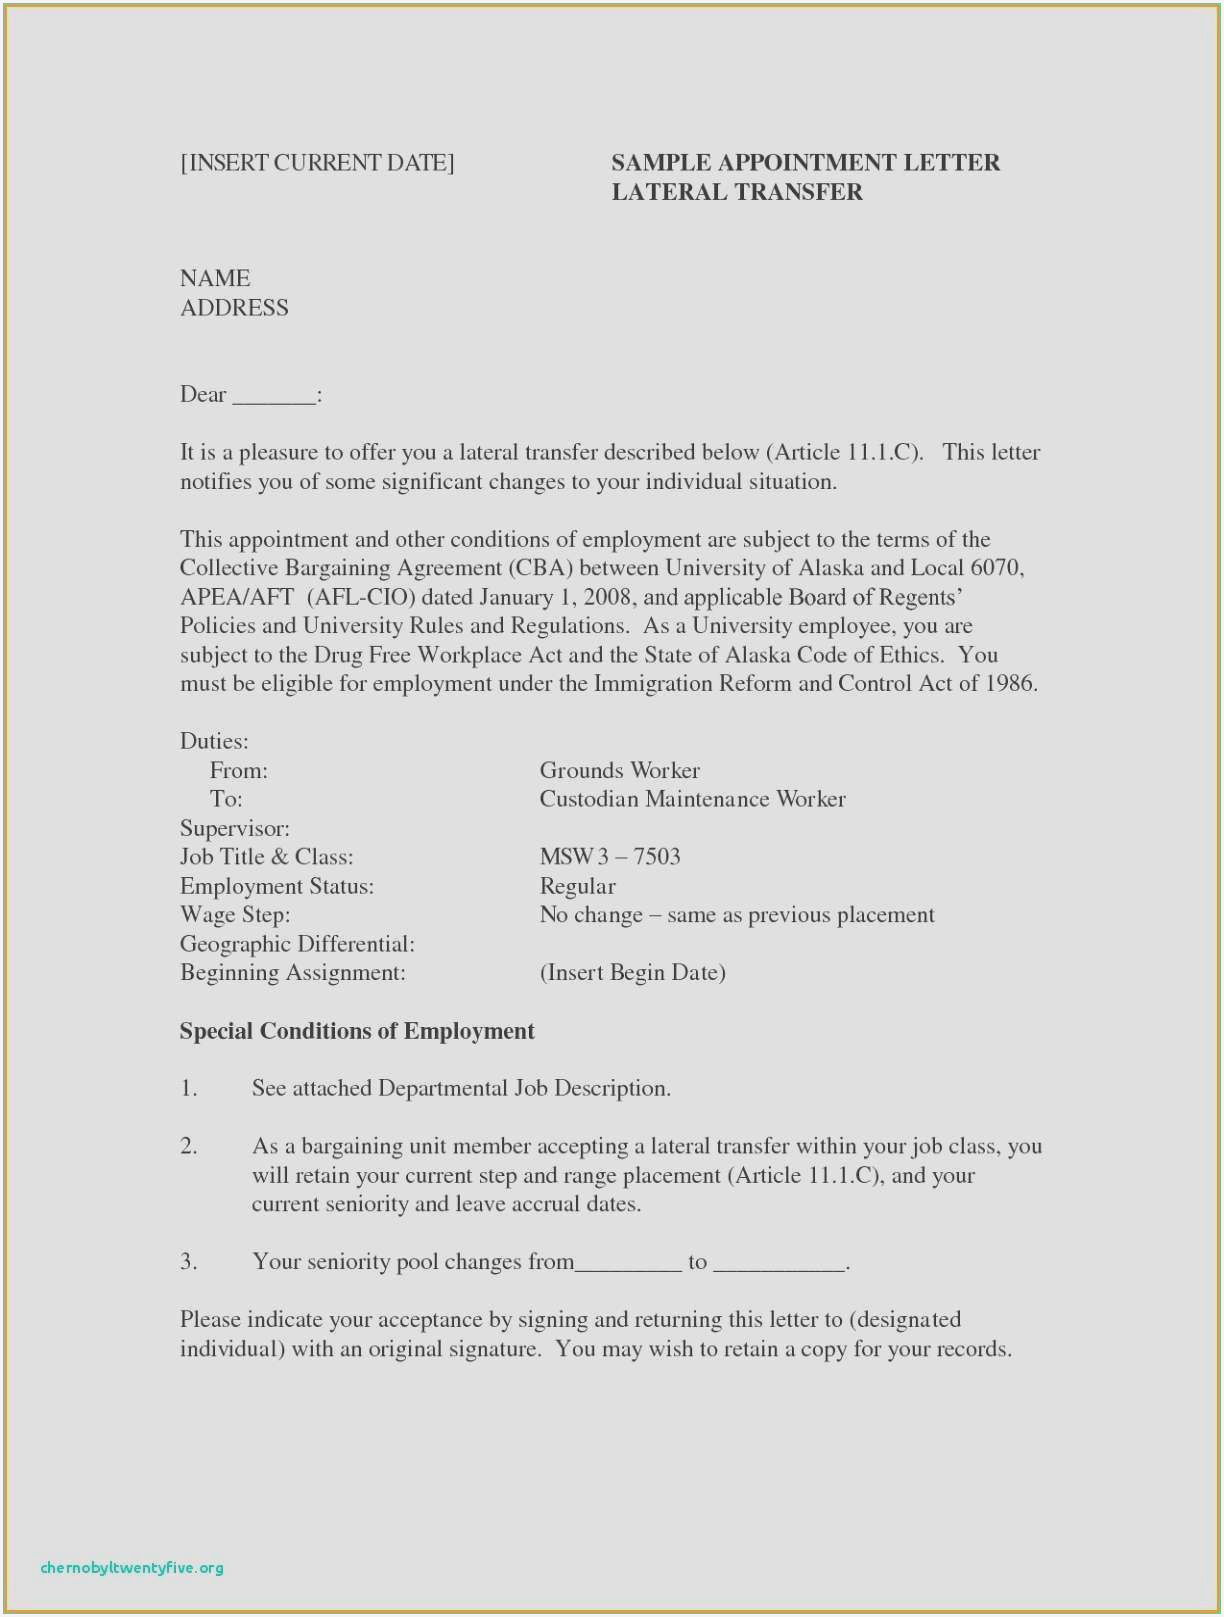 nursing assistant resume template sample article cashier examples objective example for Resume Article Assistant Resume